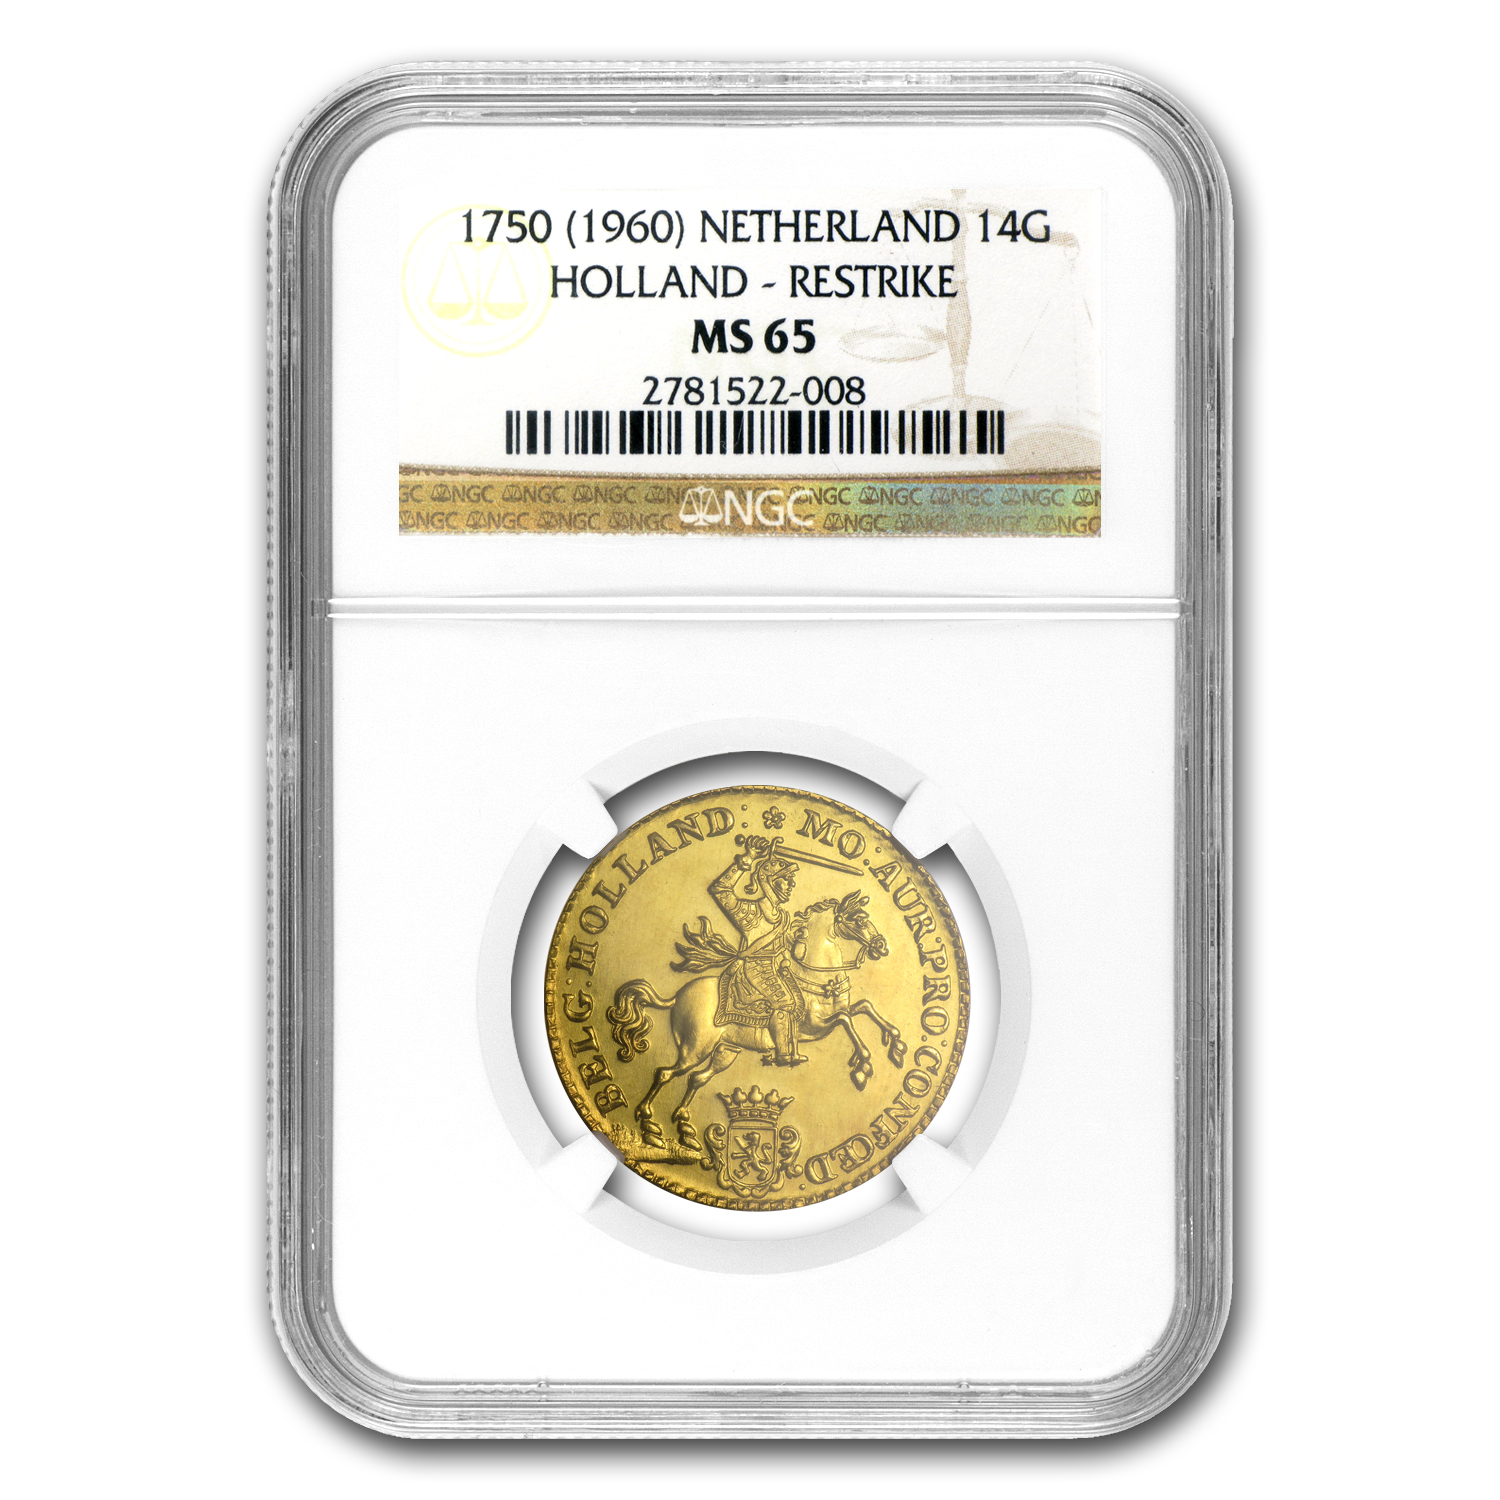 1750 Holland Gold 14 Gulden MS-65 NGC (1960 Restrike)